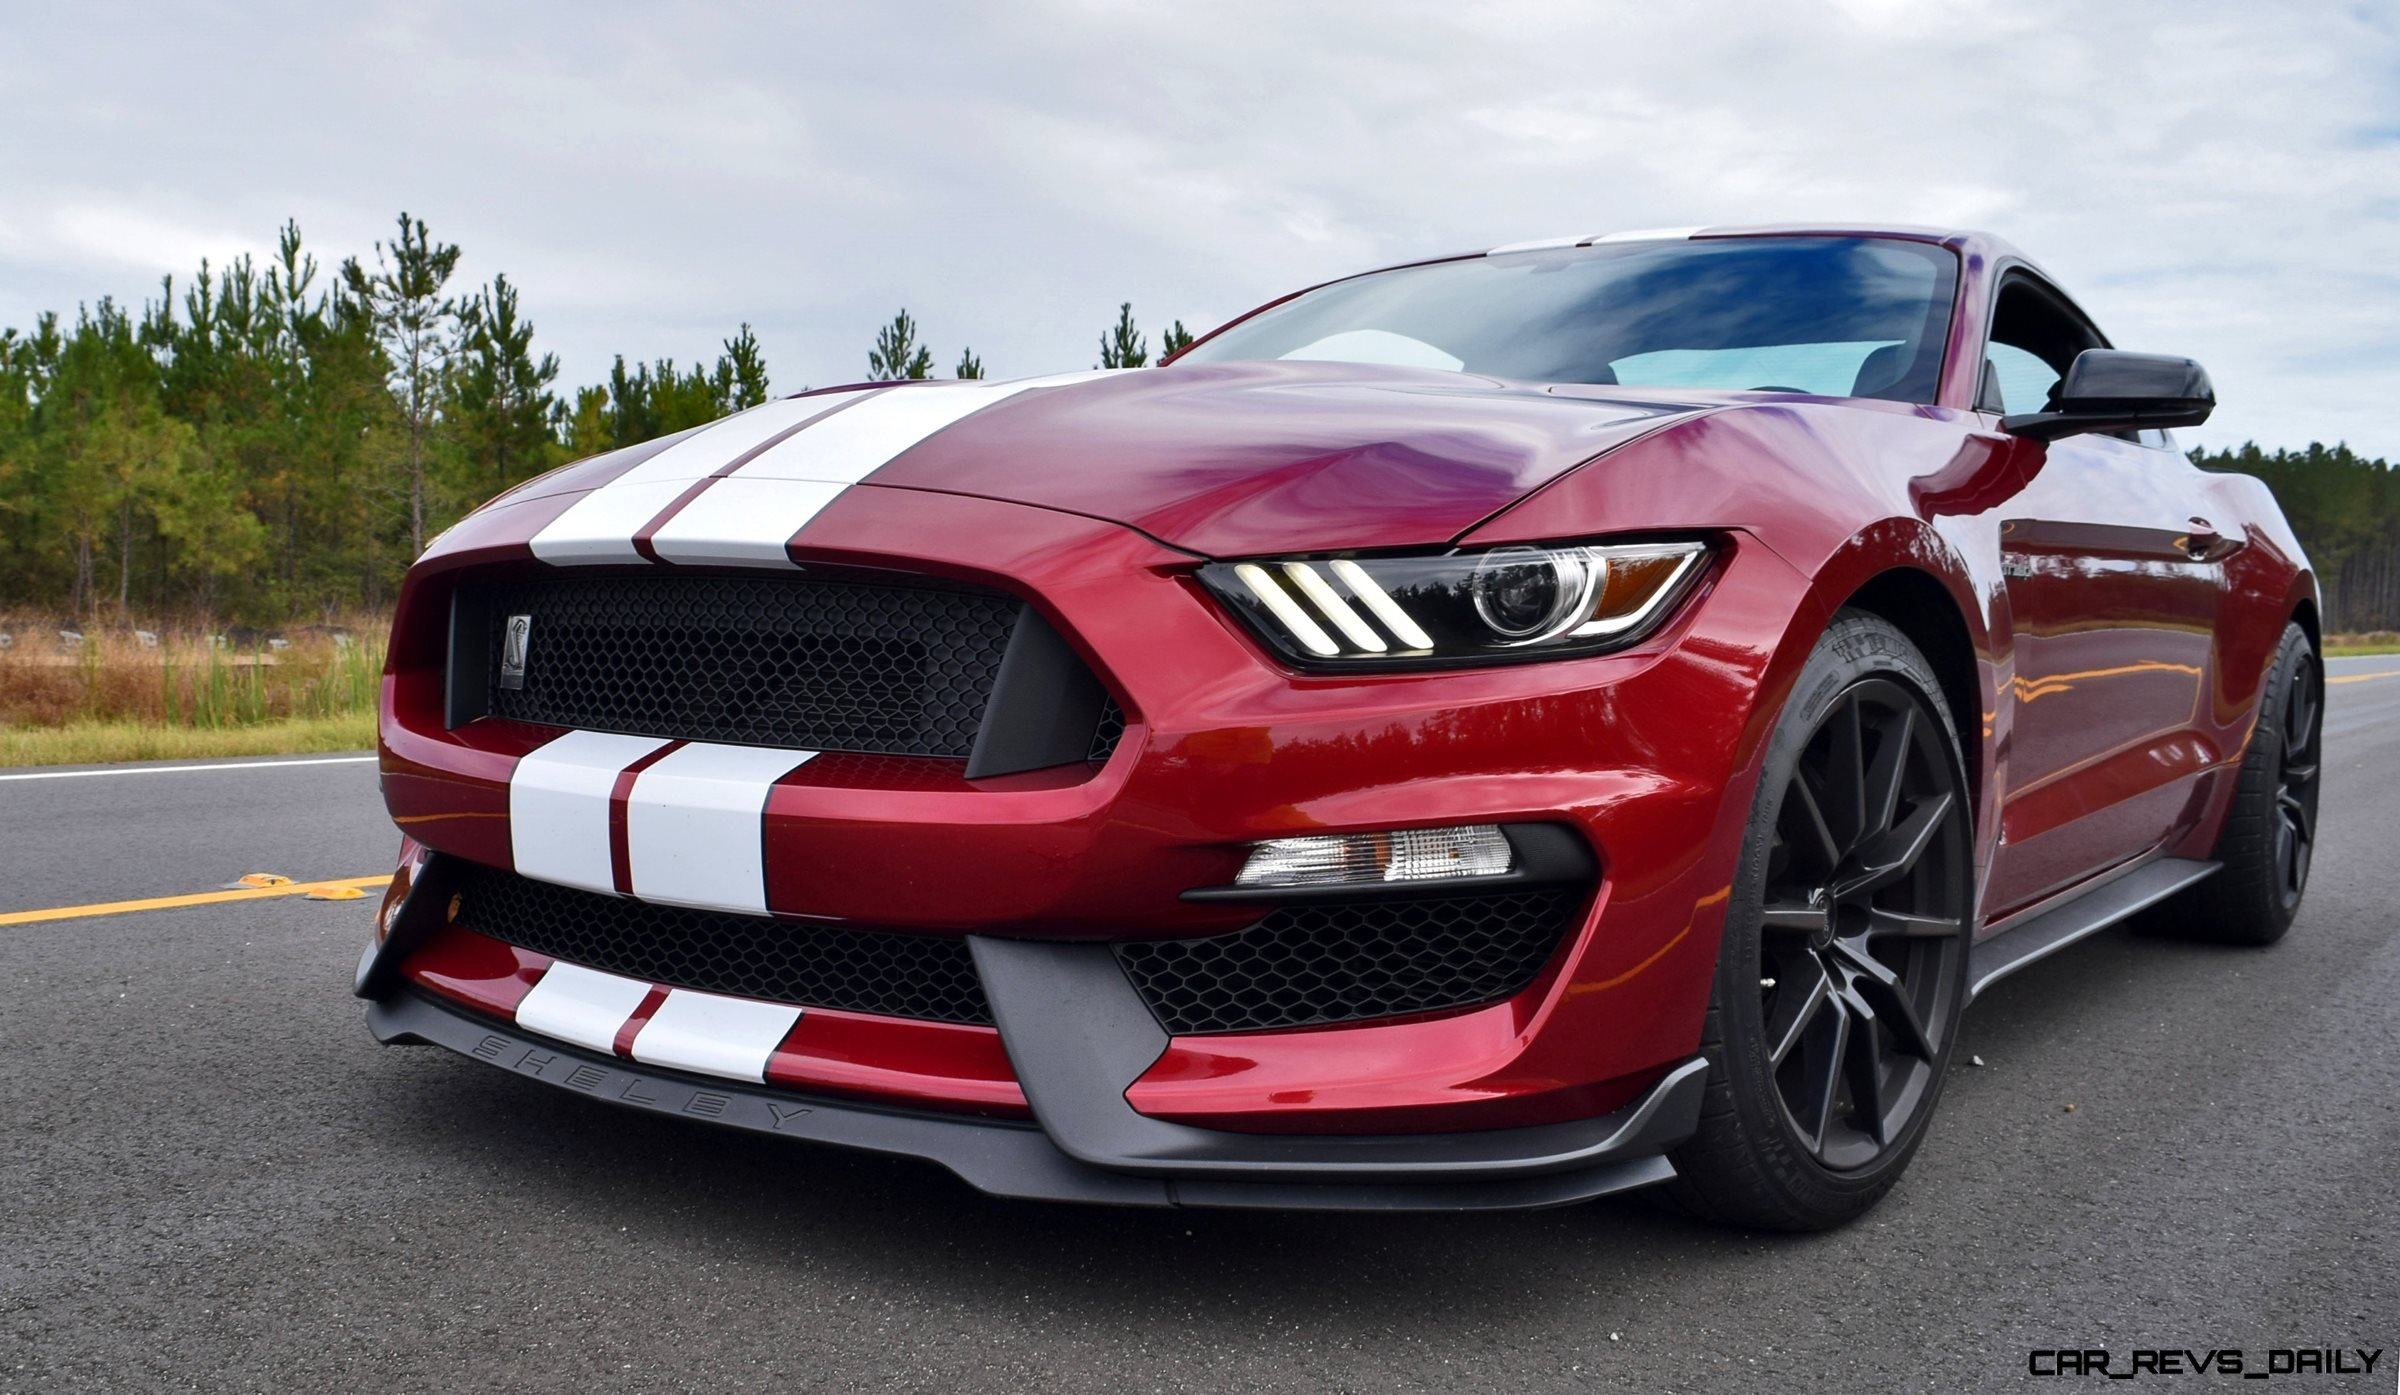 2017 Ford Mustang SHELBY GT350 - Review w/ 5 HD Videos